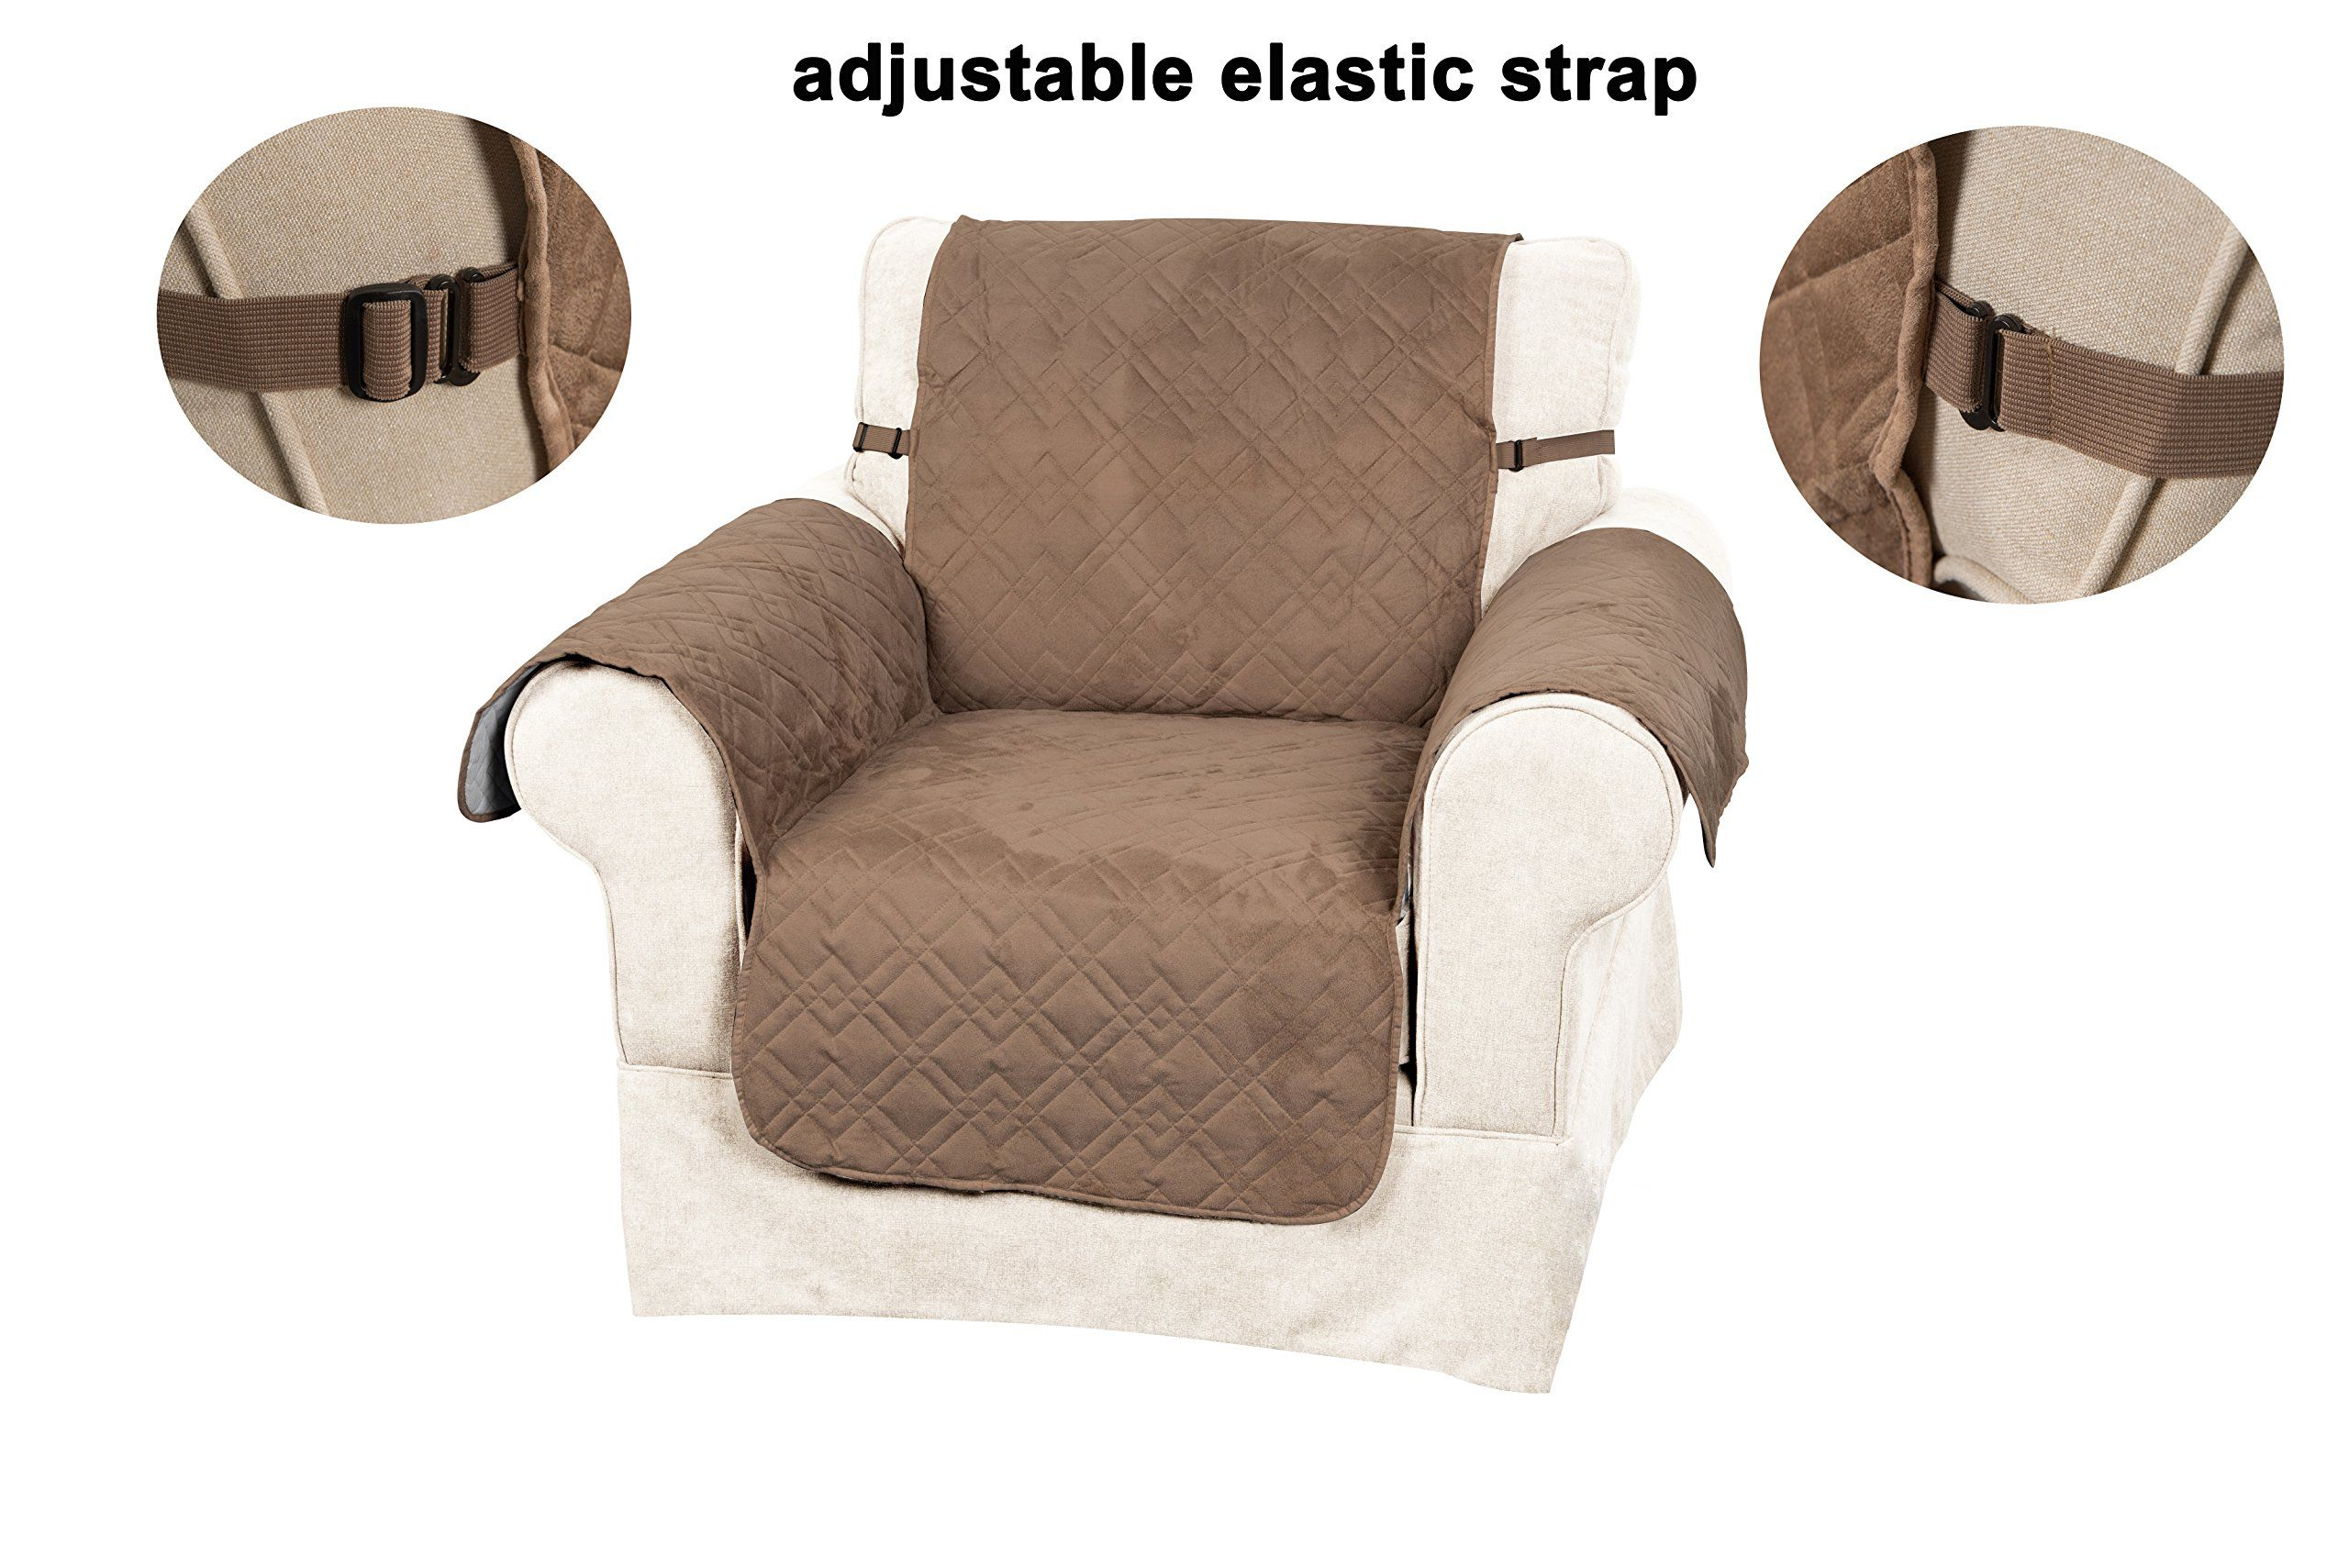 Fabulous Innx Slipcovers Made Of Quilted Microfiber Suede For Pets Machost Co Dining Chair Design Ideas Machostcouk